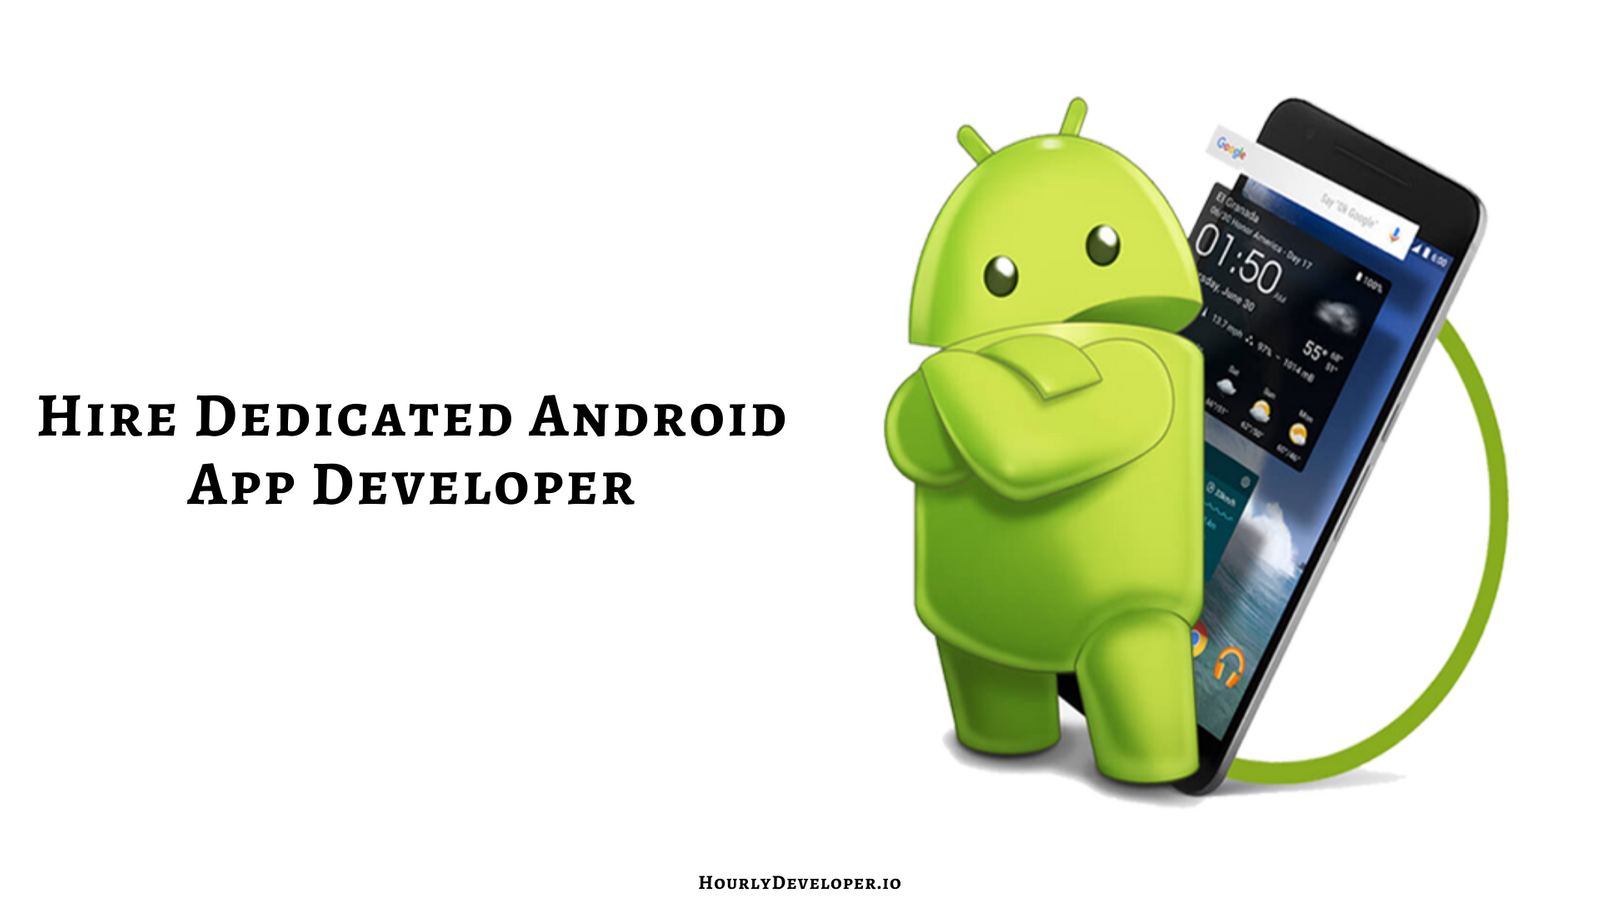 Hire Dedicated Android App Developer